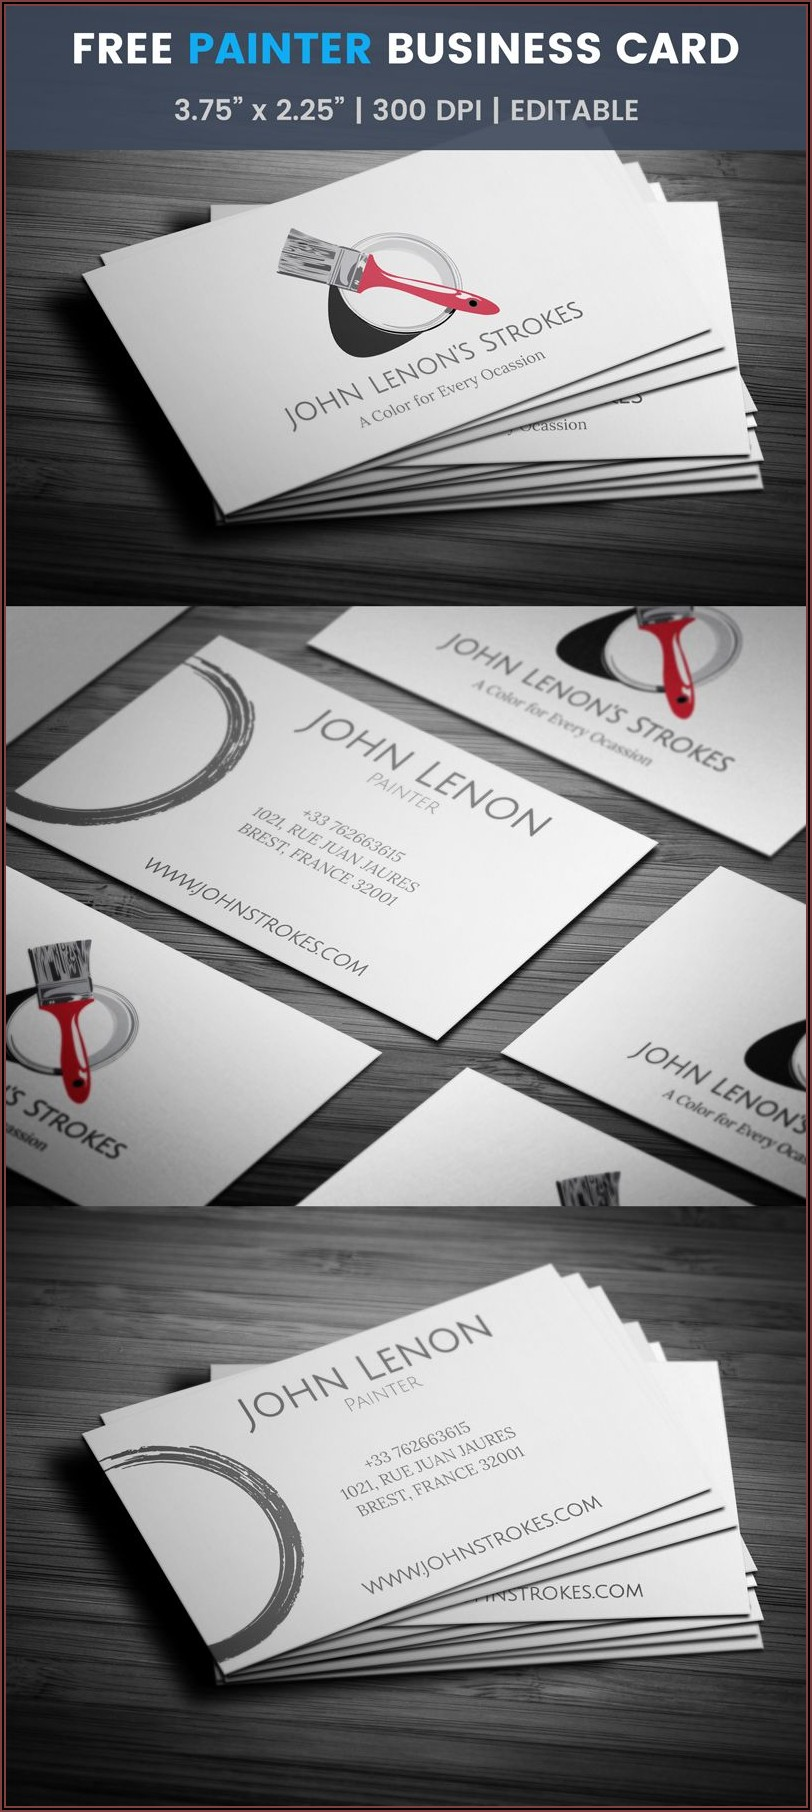 Painter Business Card Template Free